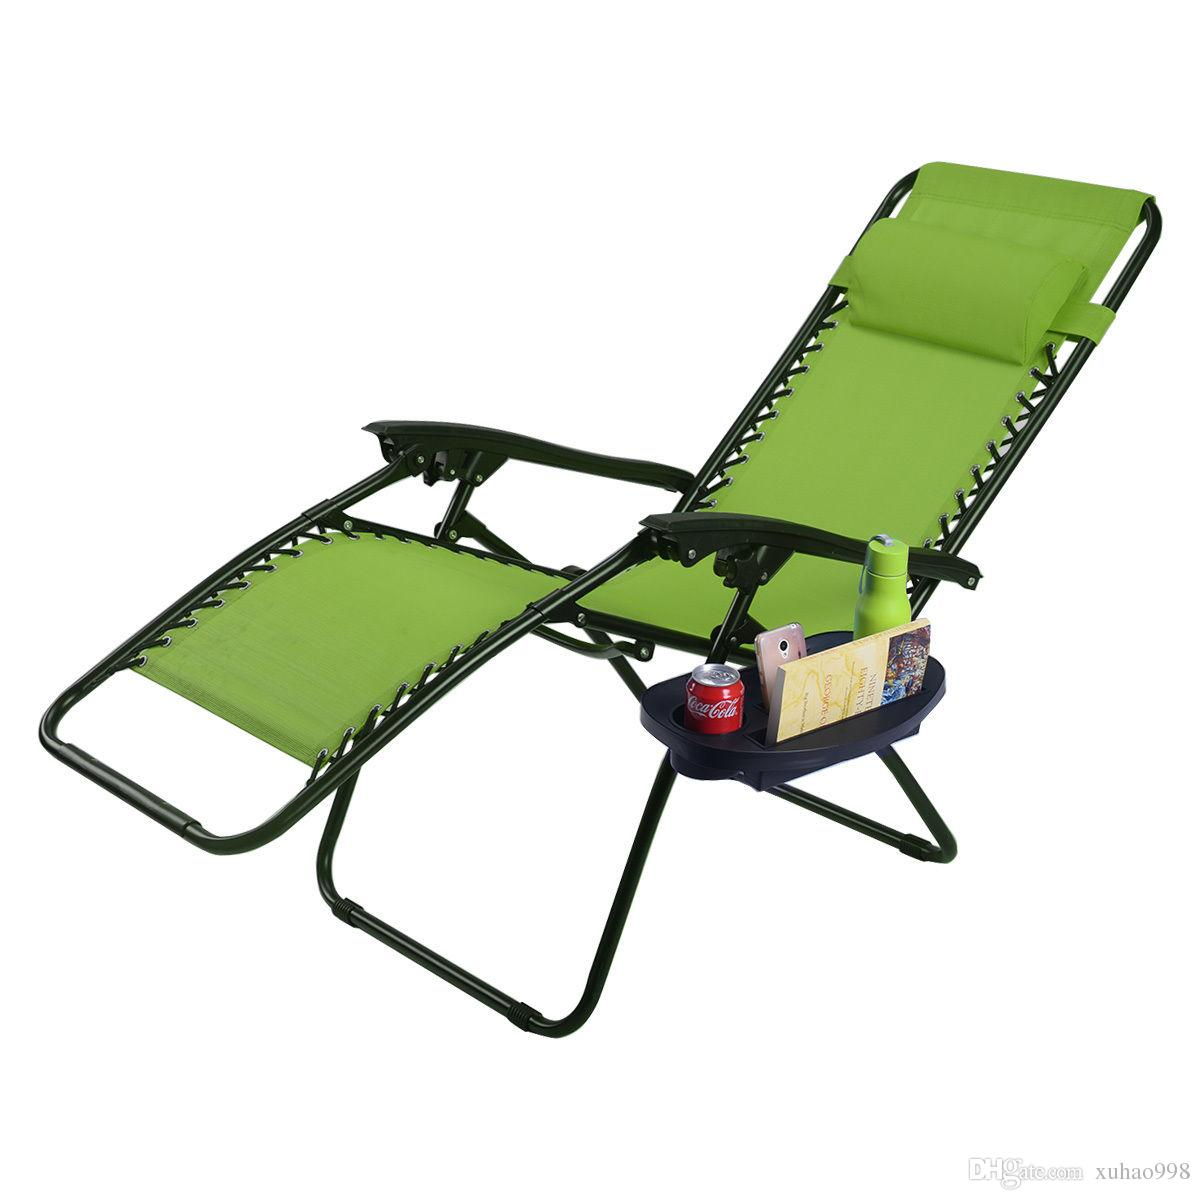 2018 Folding Zero Gravity Reclining Lounge Chairs Outdoor Beach Patio W Utility Tray From Xuhao998 33 17 Dhgate Com